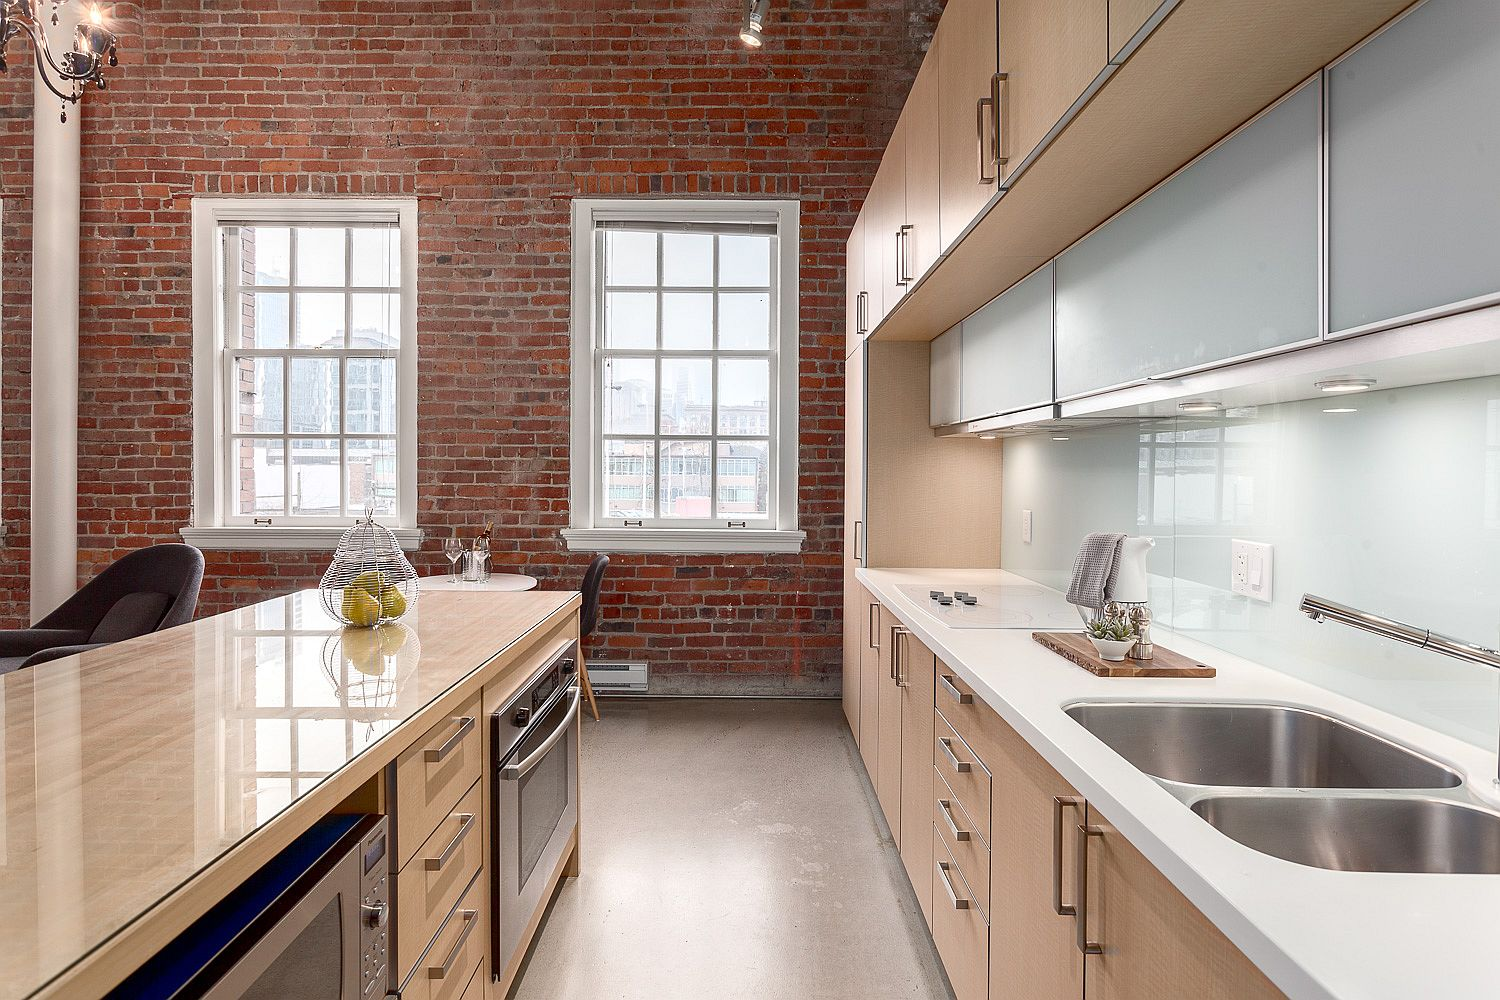 Exposed-brick-wall-also-gives-the-kitchen-a-fabulous-modern-industrial-look